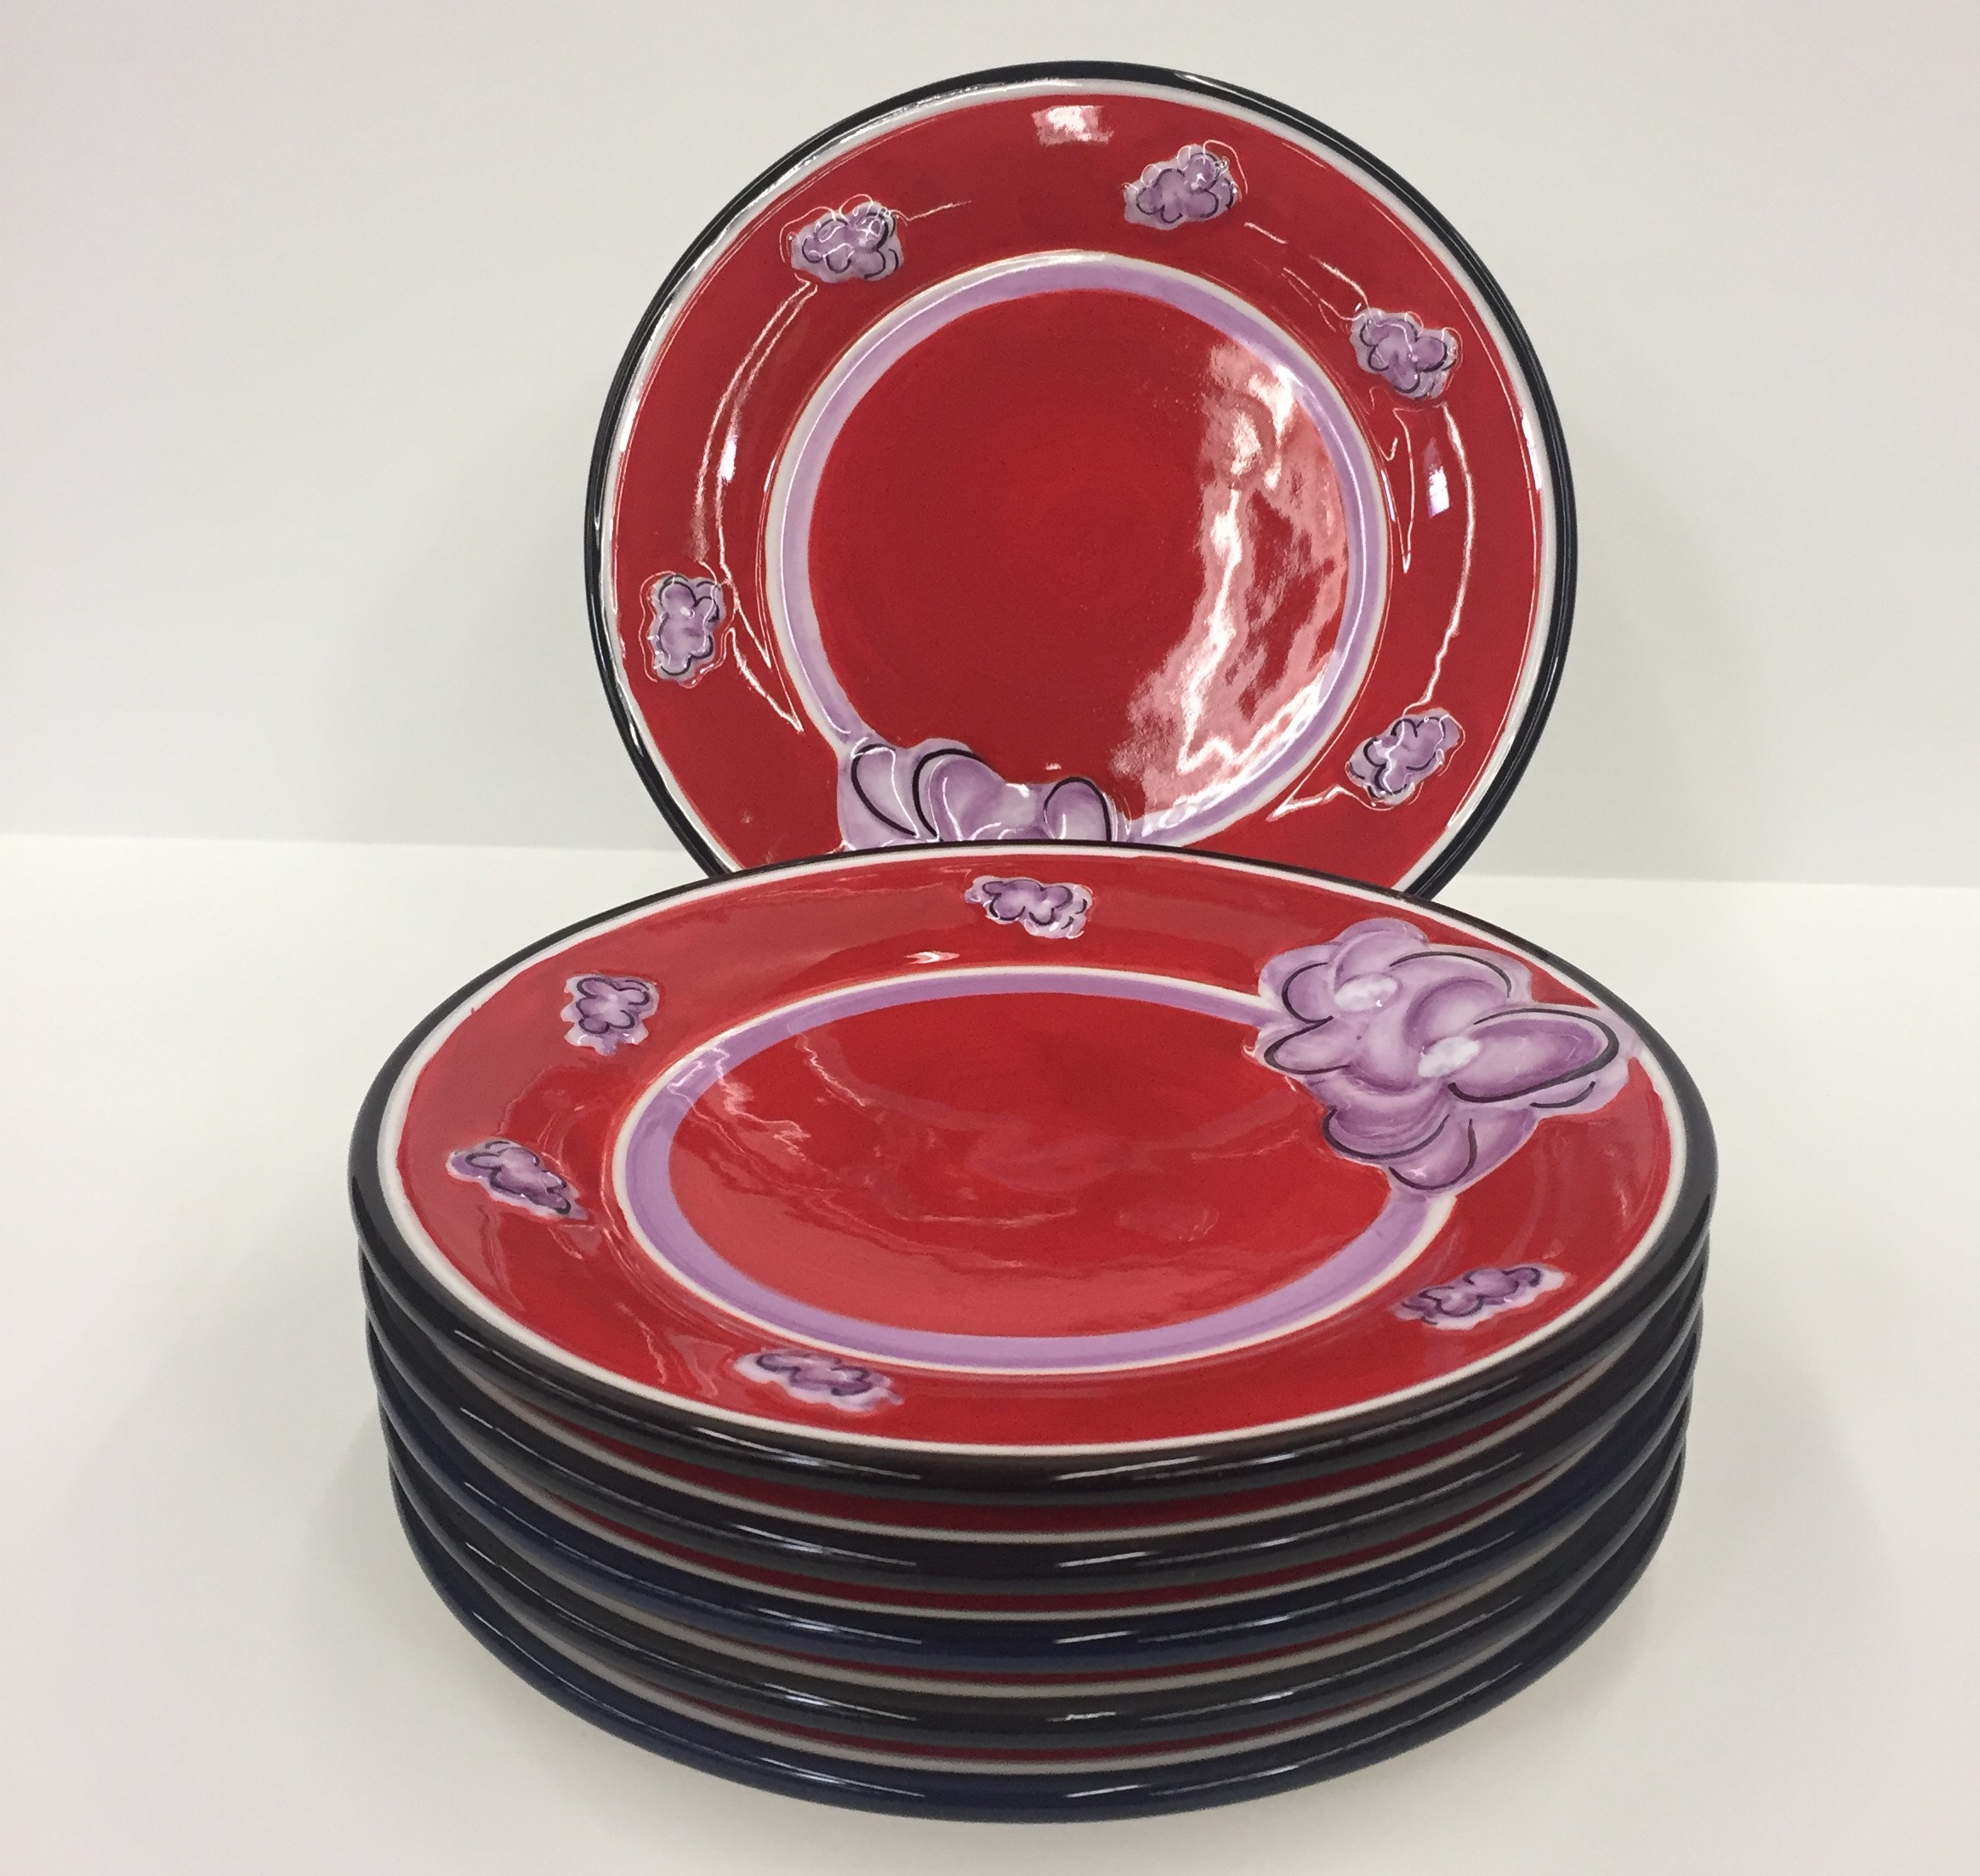 H514 REDHAT DESIGN JAR/PILLAR PLATE